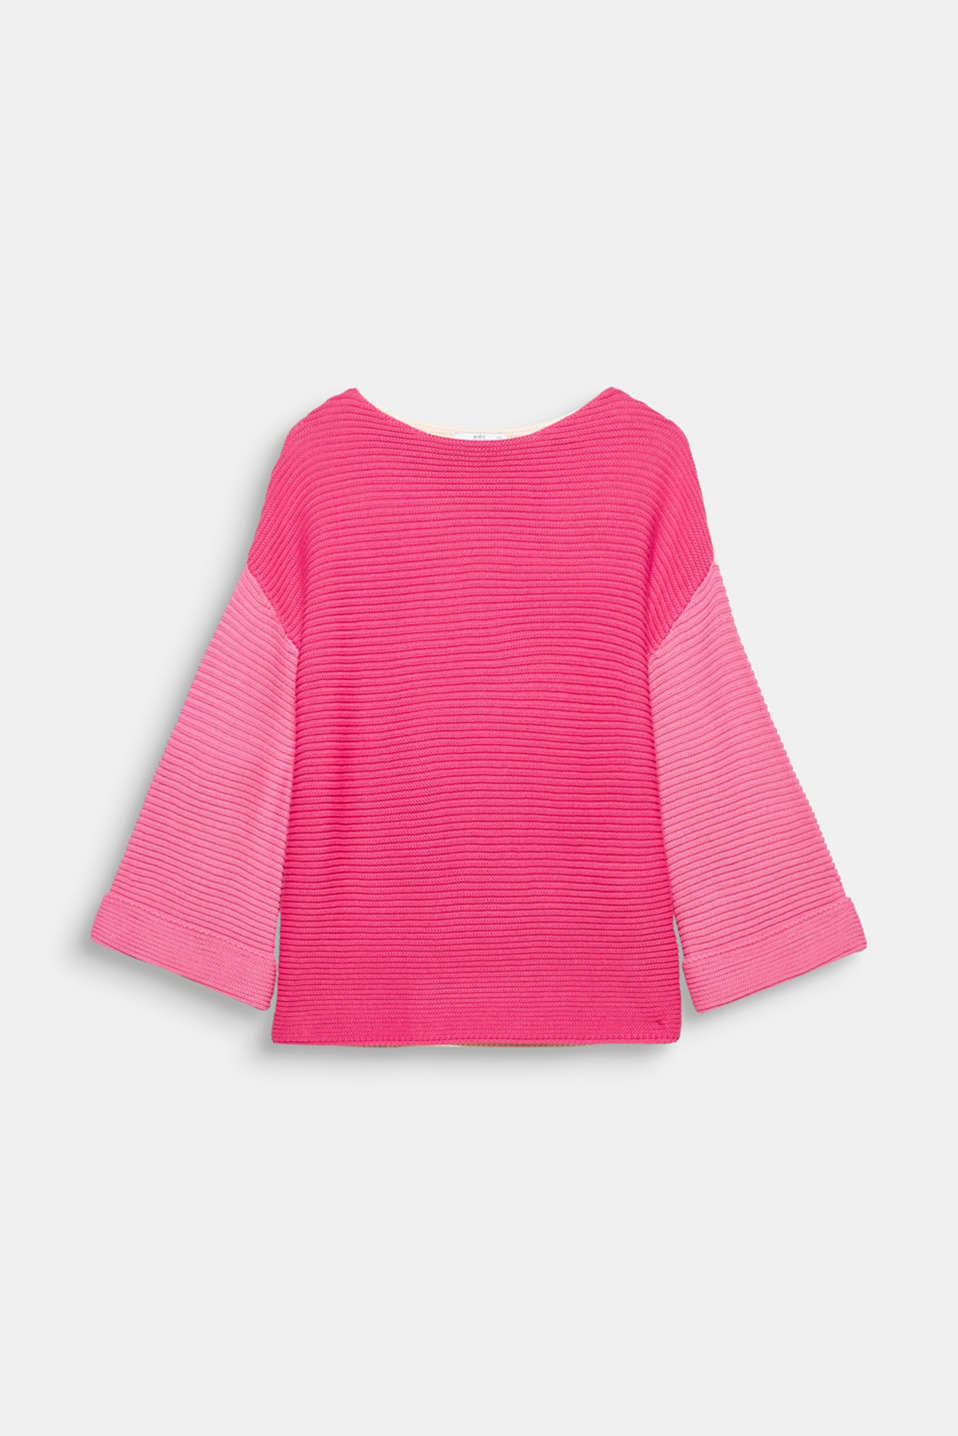 Already in love: this somewhat chunky knit, cotton blend jumper in bold colour blocking is a fave!